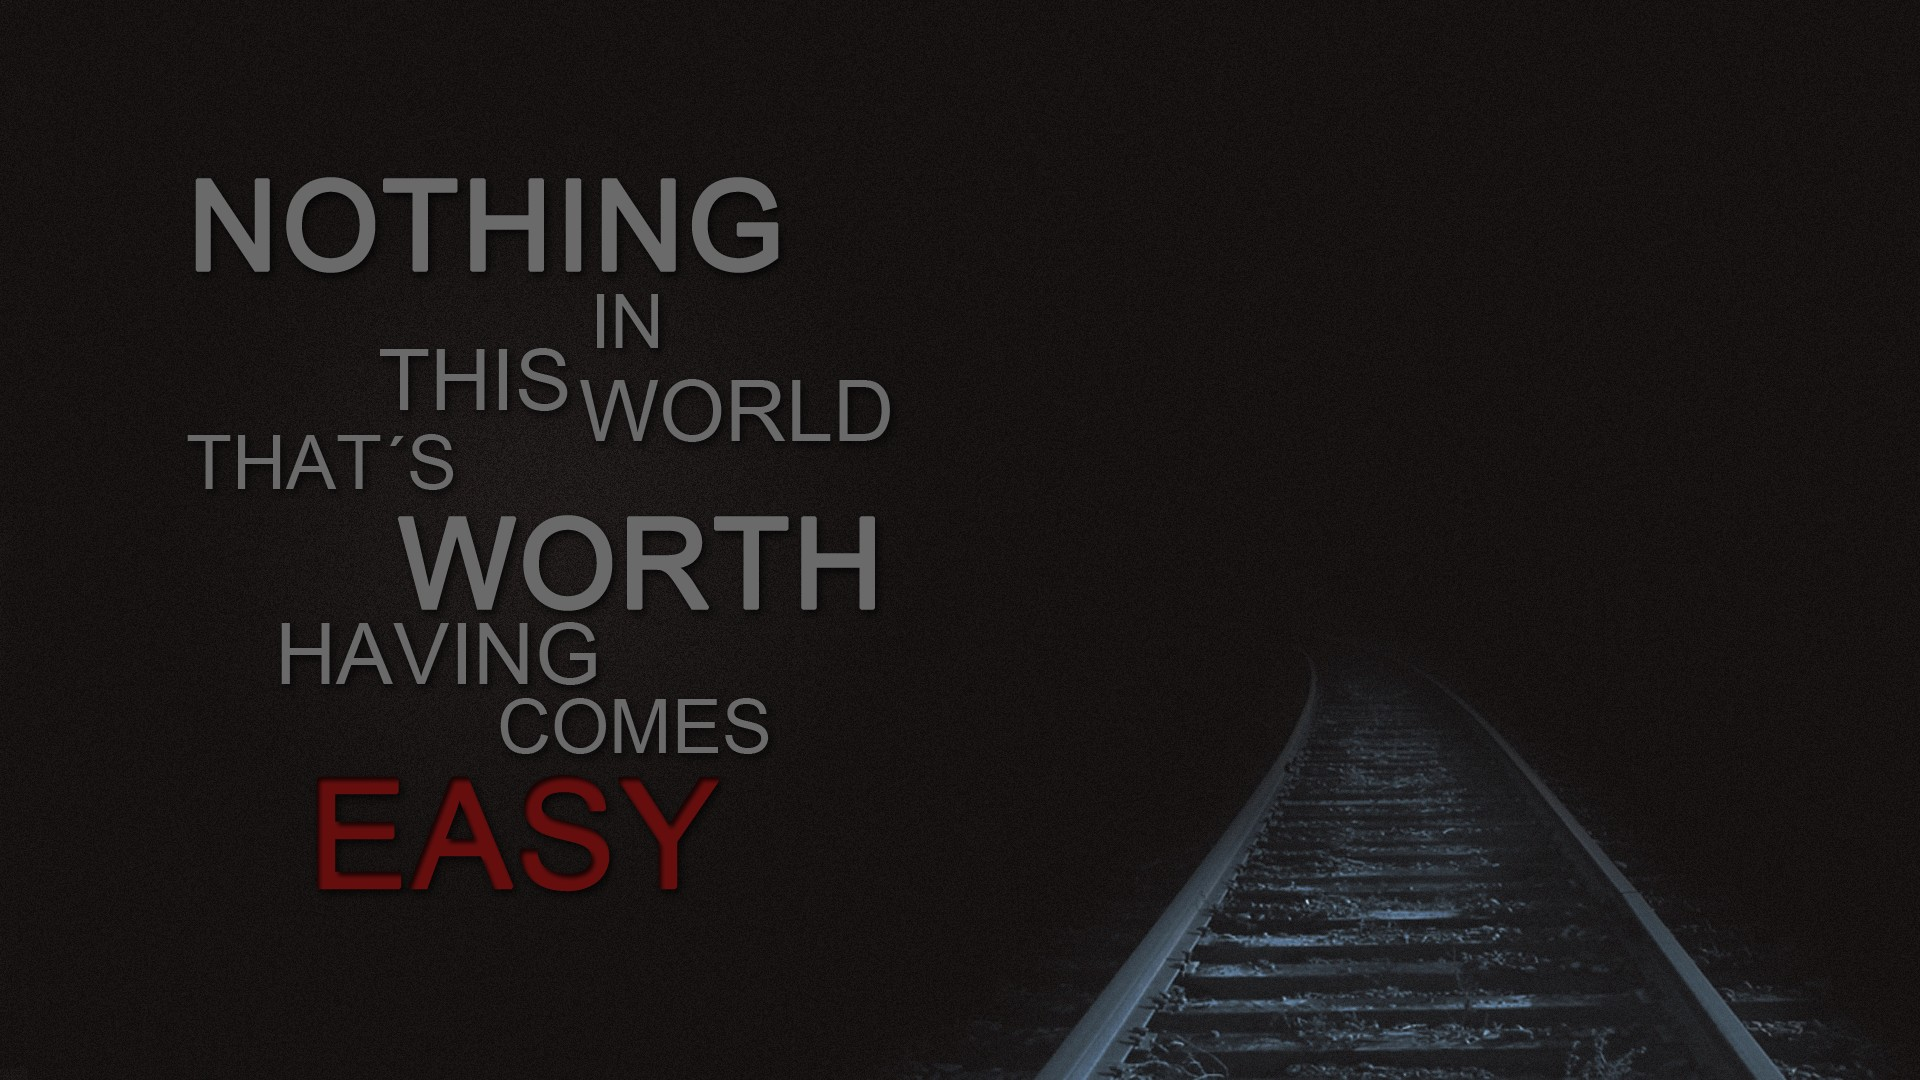 Quote Wallpaper 183 ① Download Free Hd Wallpapers For Desktop